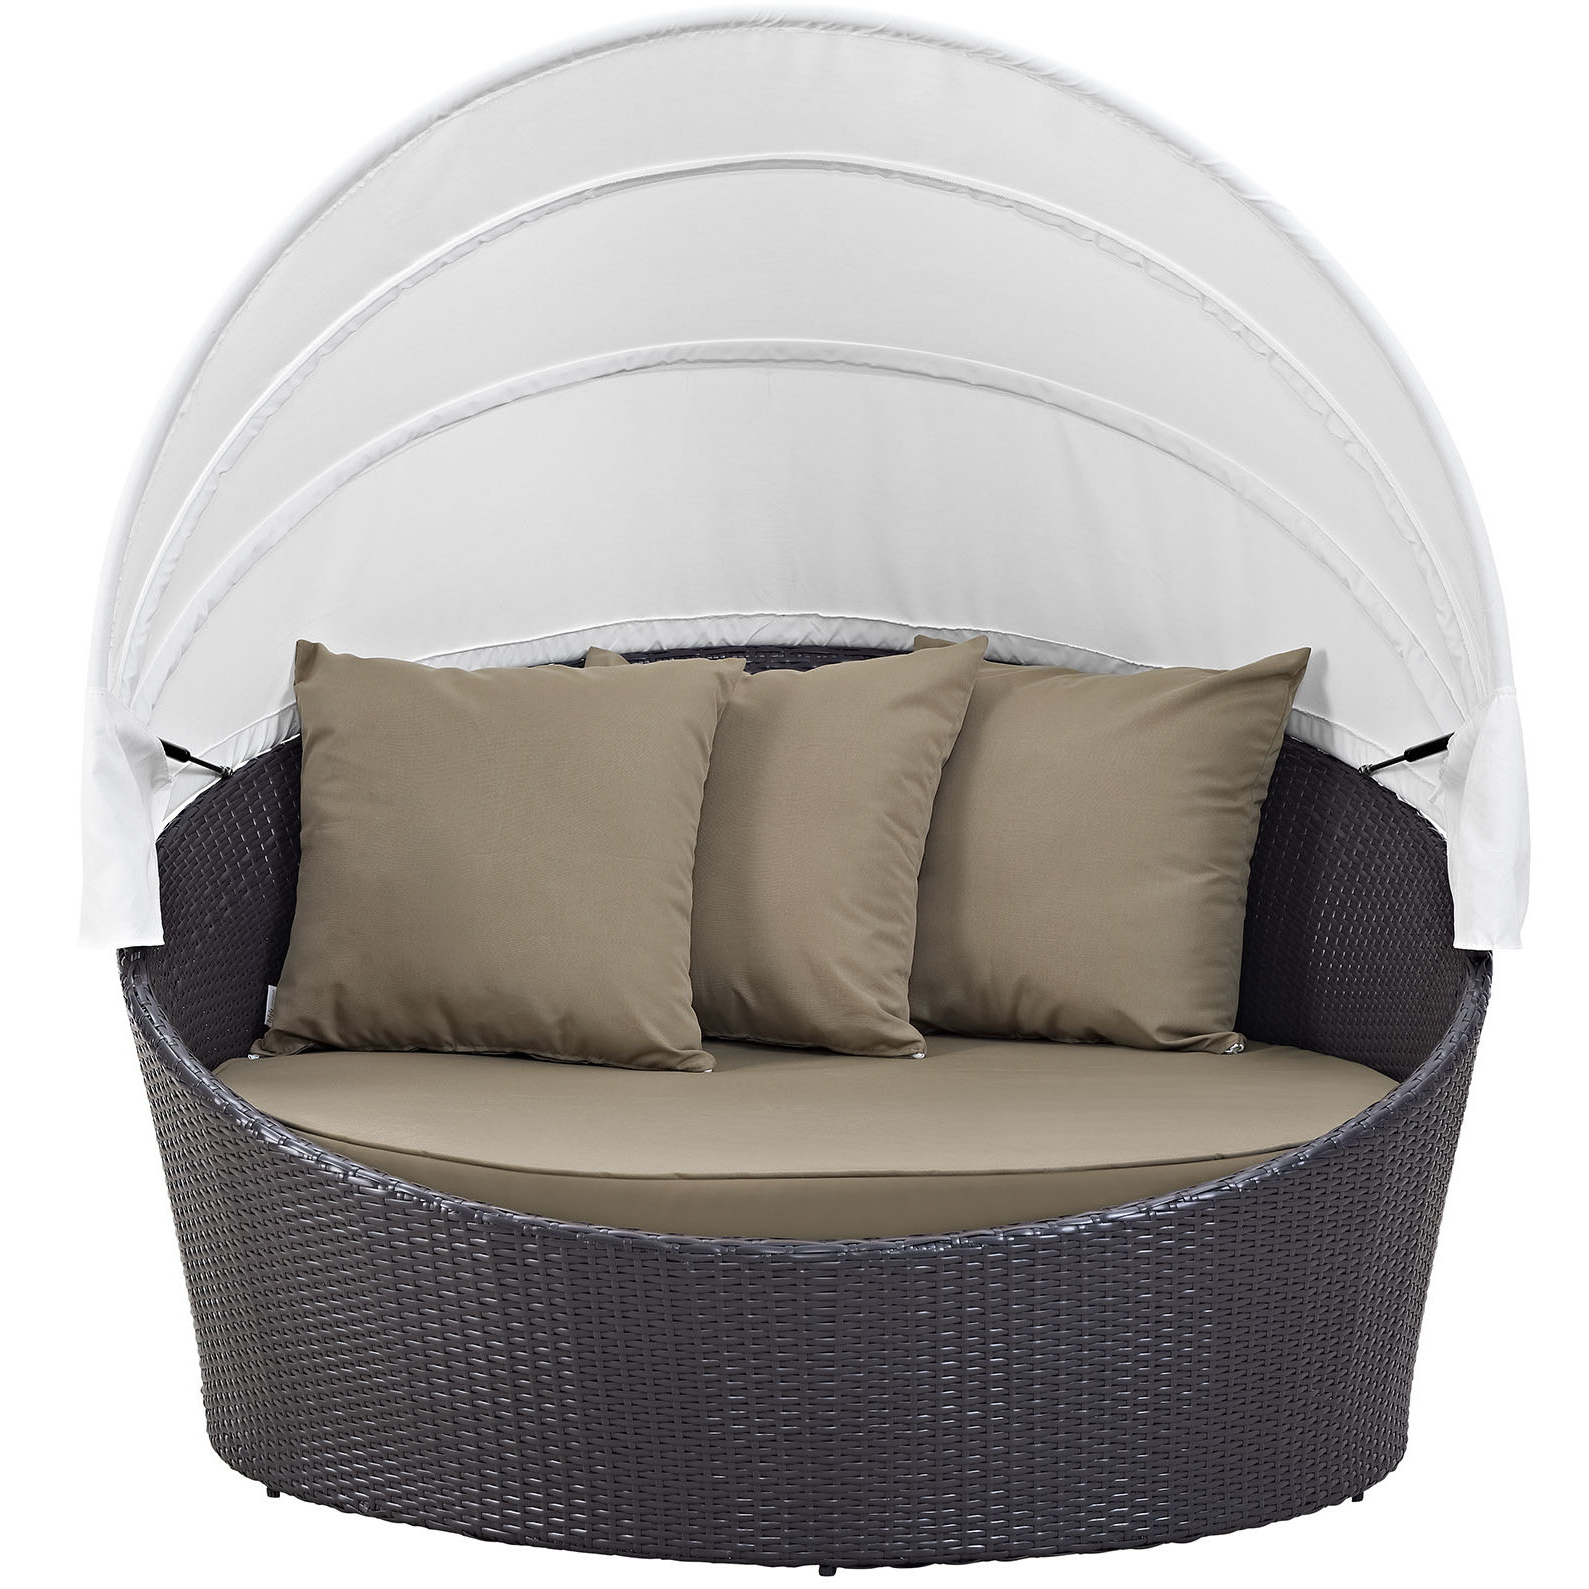 Preferred Hatley Patio Daybeds With Cushions With Brentwood Canopy Patio Daybed With Cushions (Gallery 13 of 20)